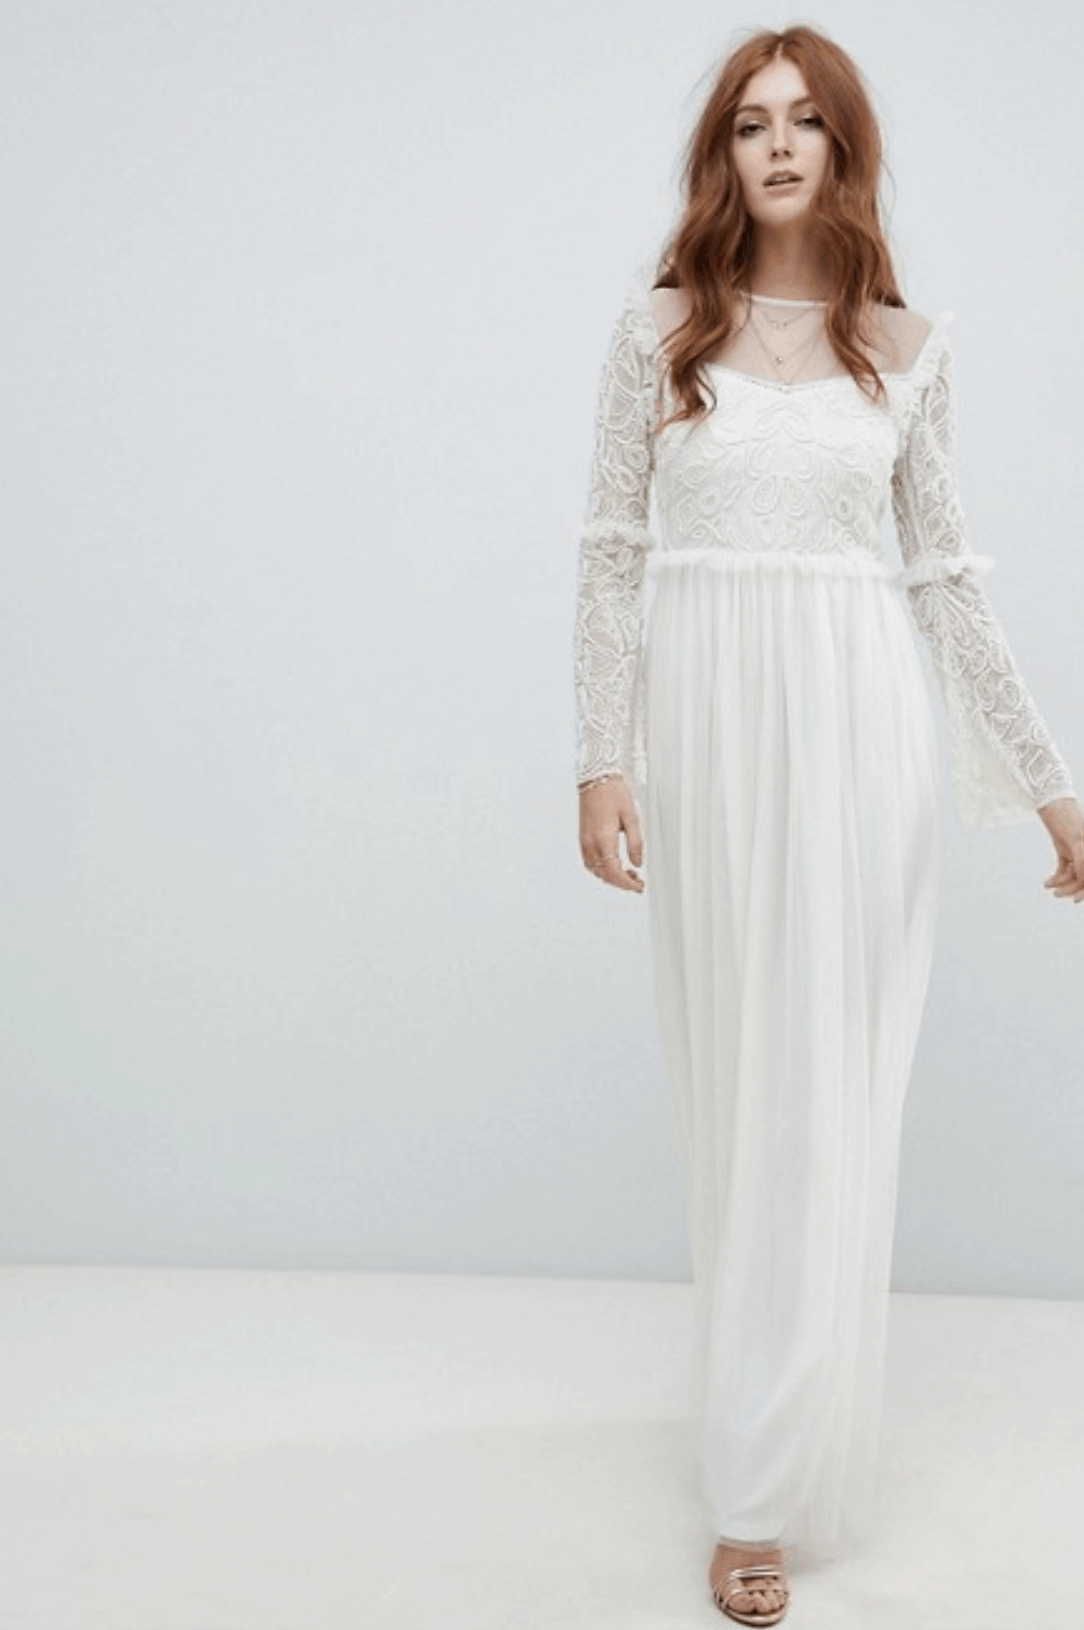 b752f8829a29 Cheap Affordable Bridal Gowns and Wedding Dress Amelia Rose Embellished  Long Sleeve Dress Ivory